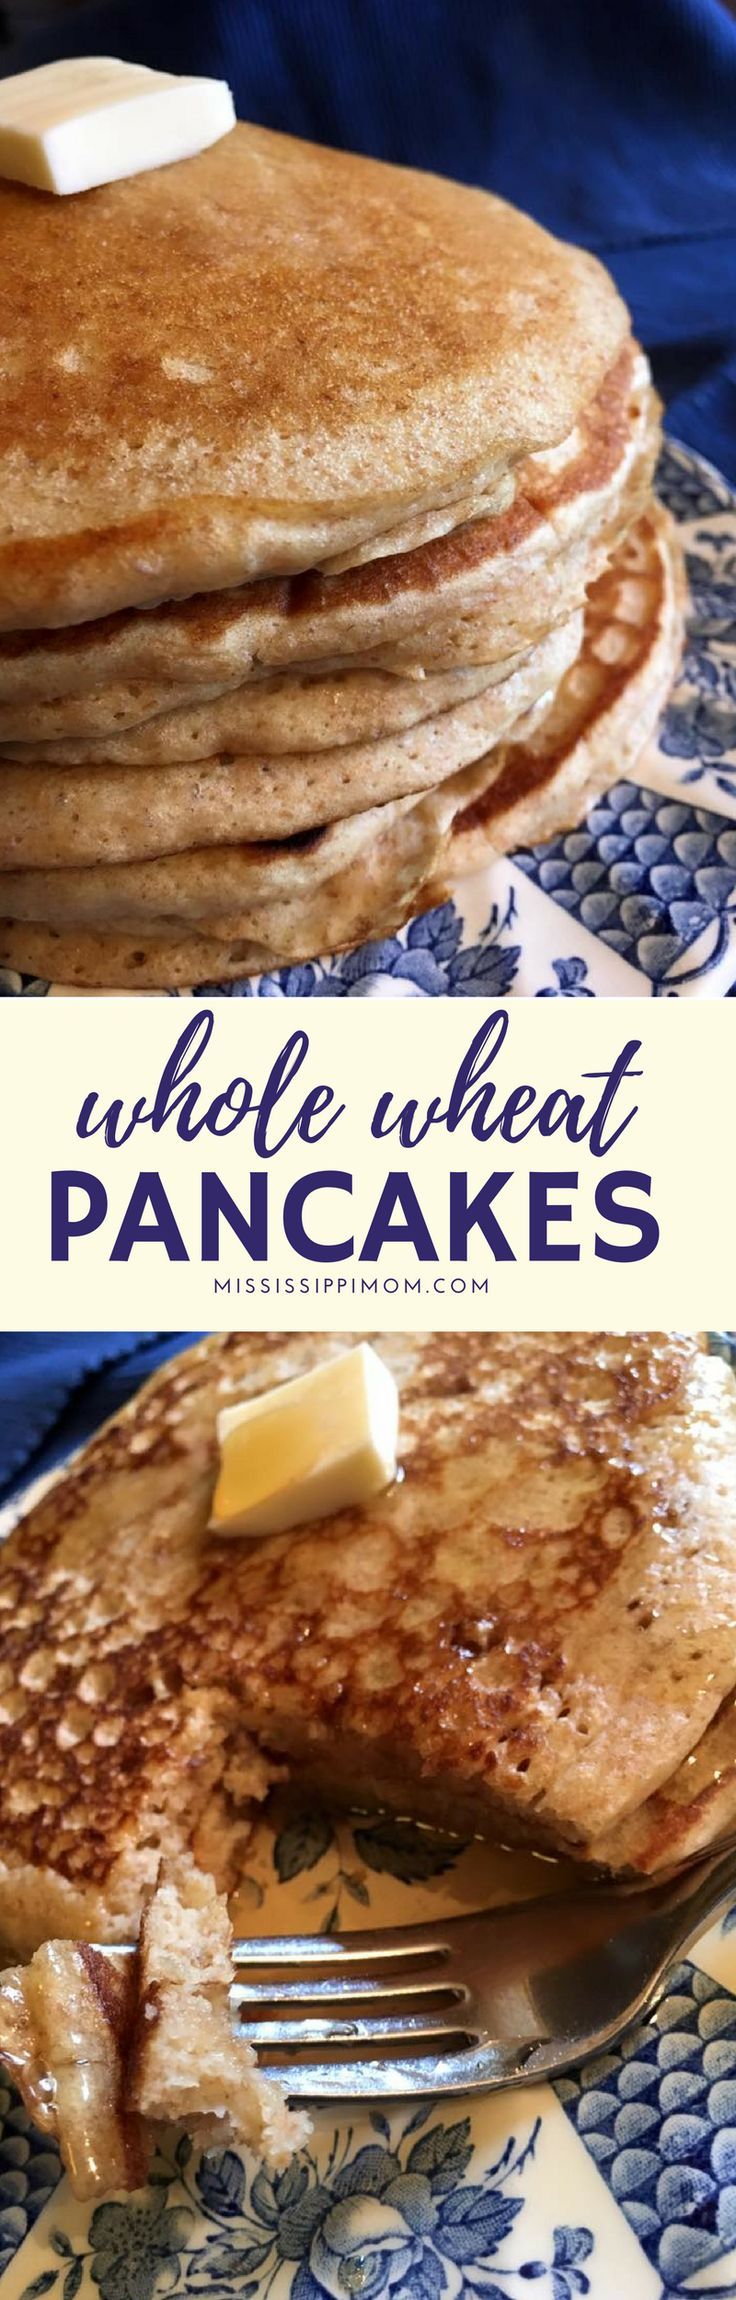 Your family will LOVE these whole wheat pancakes, which are easy to make and taste delicious!